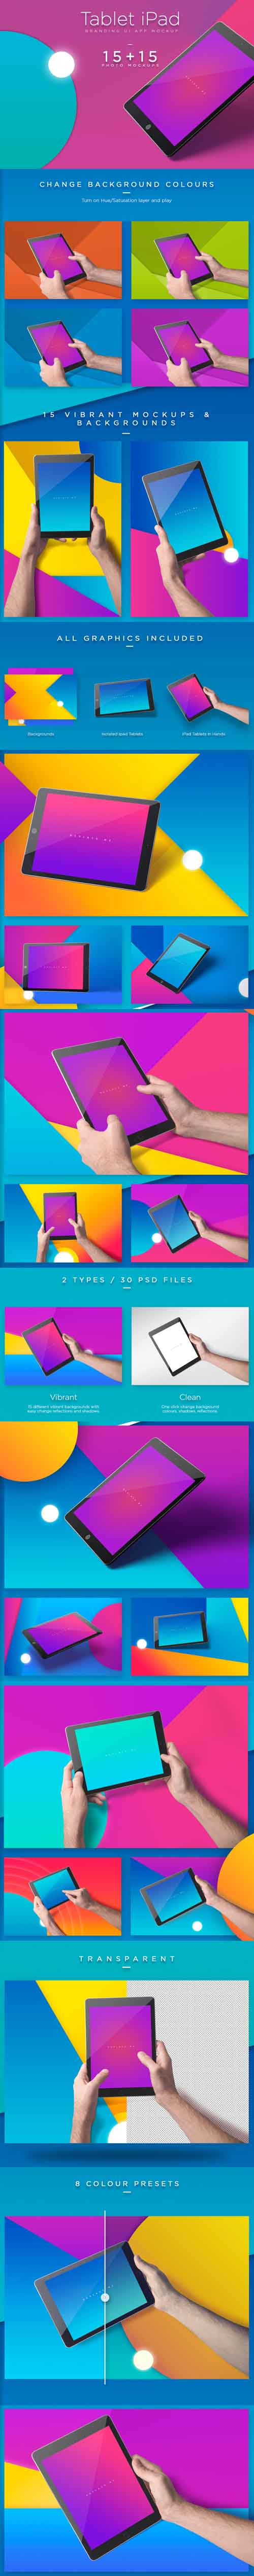 IPad Tablet UI App Mockups With Vivid Backgrounds